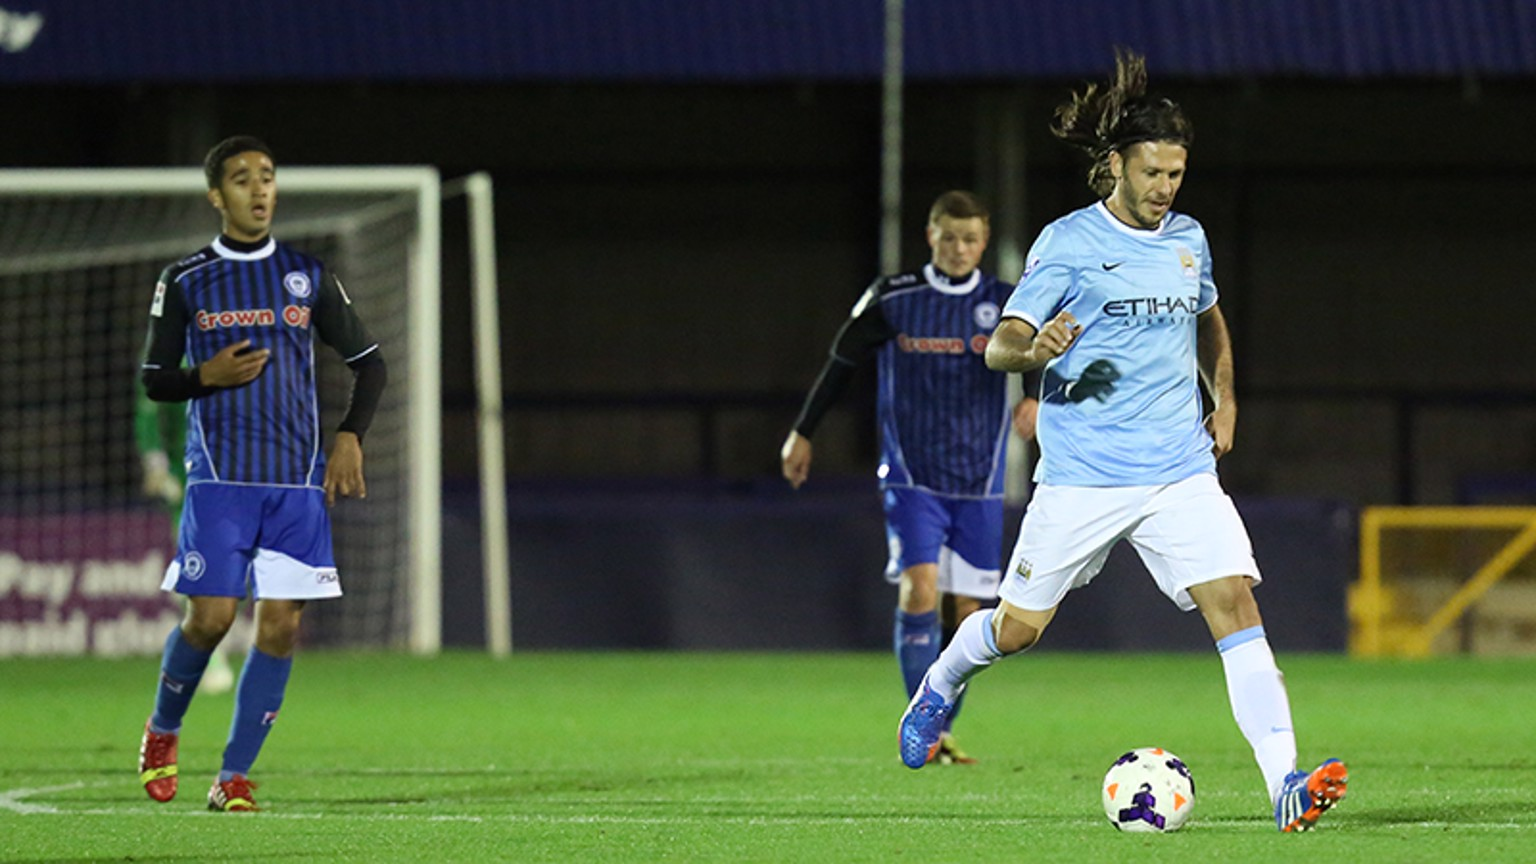 City EDS v Rochdale Manchester Senior Cup